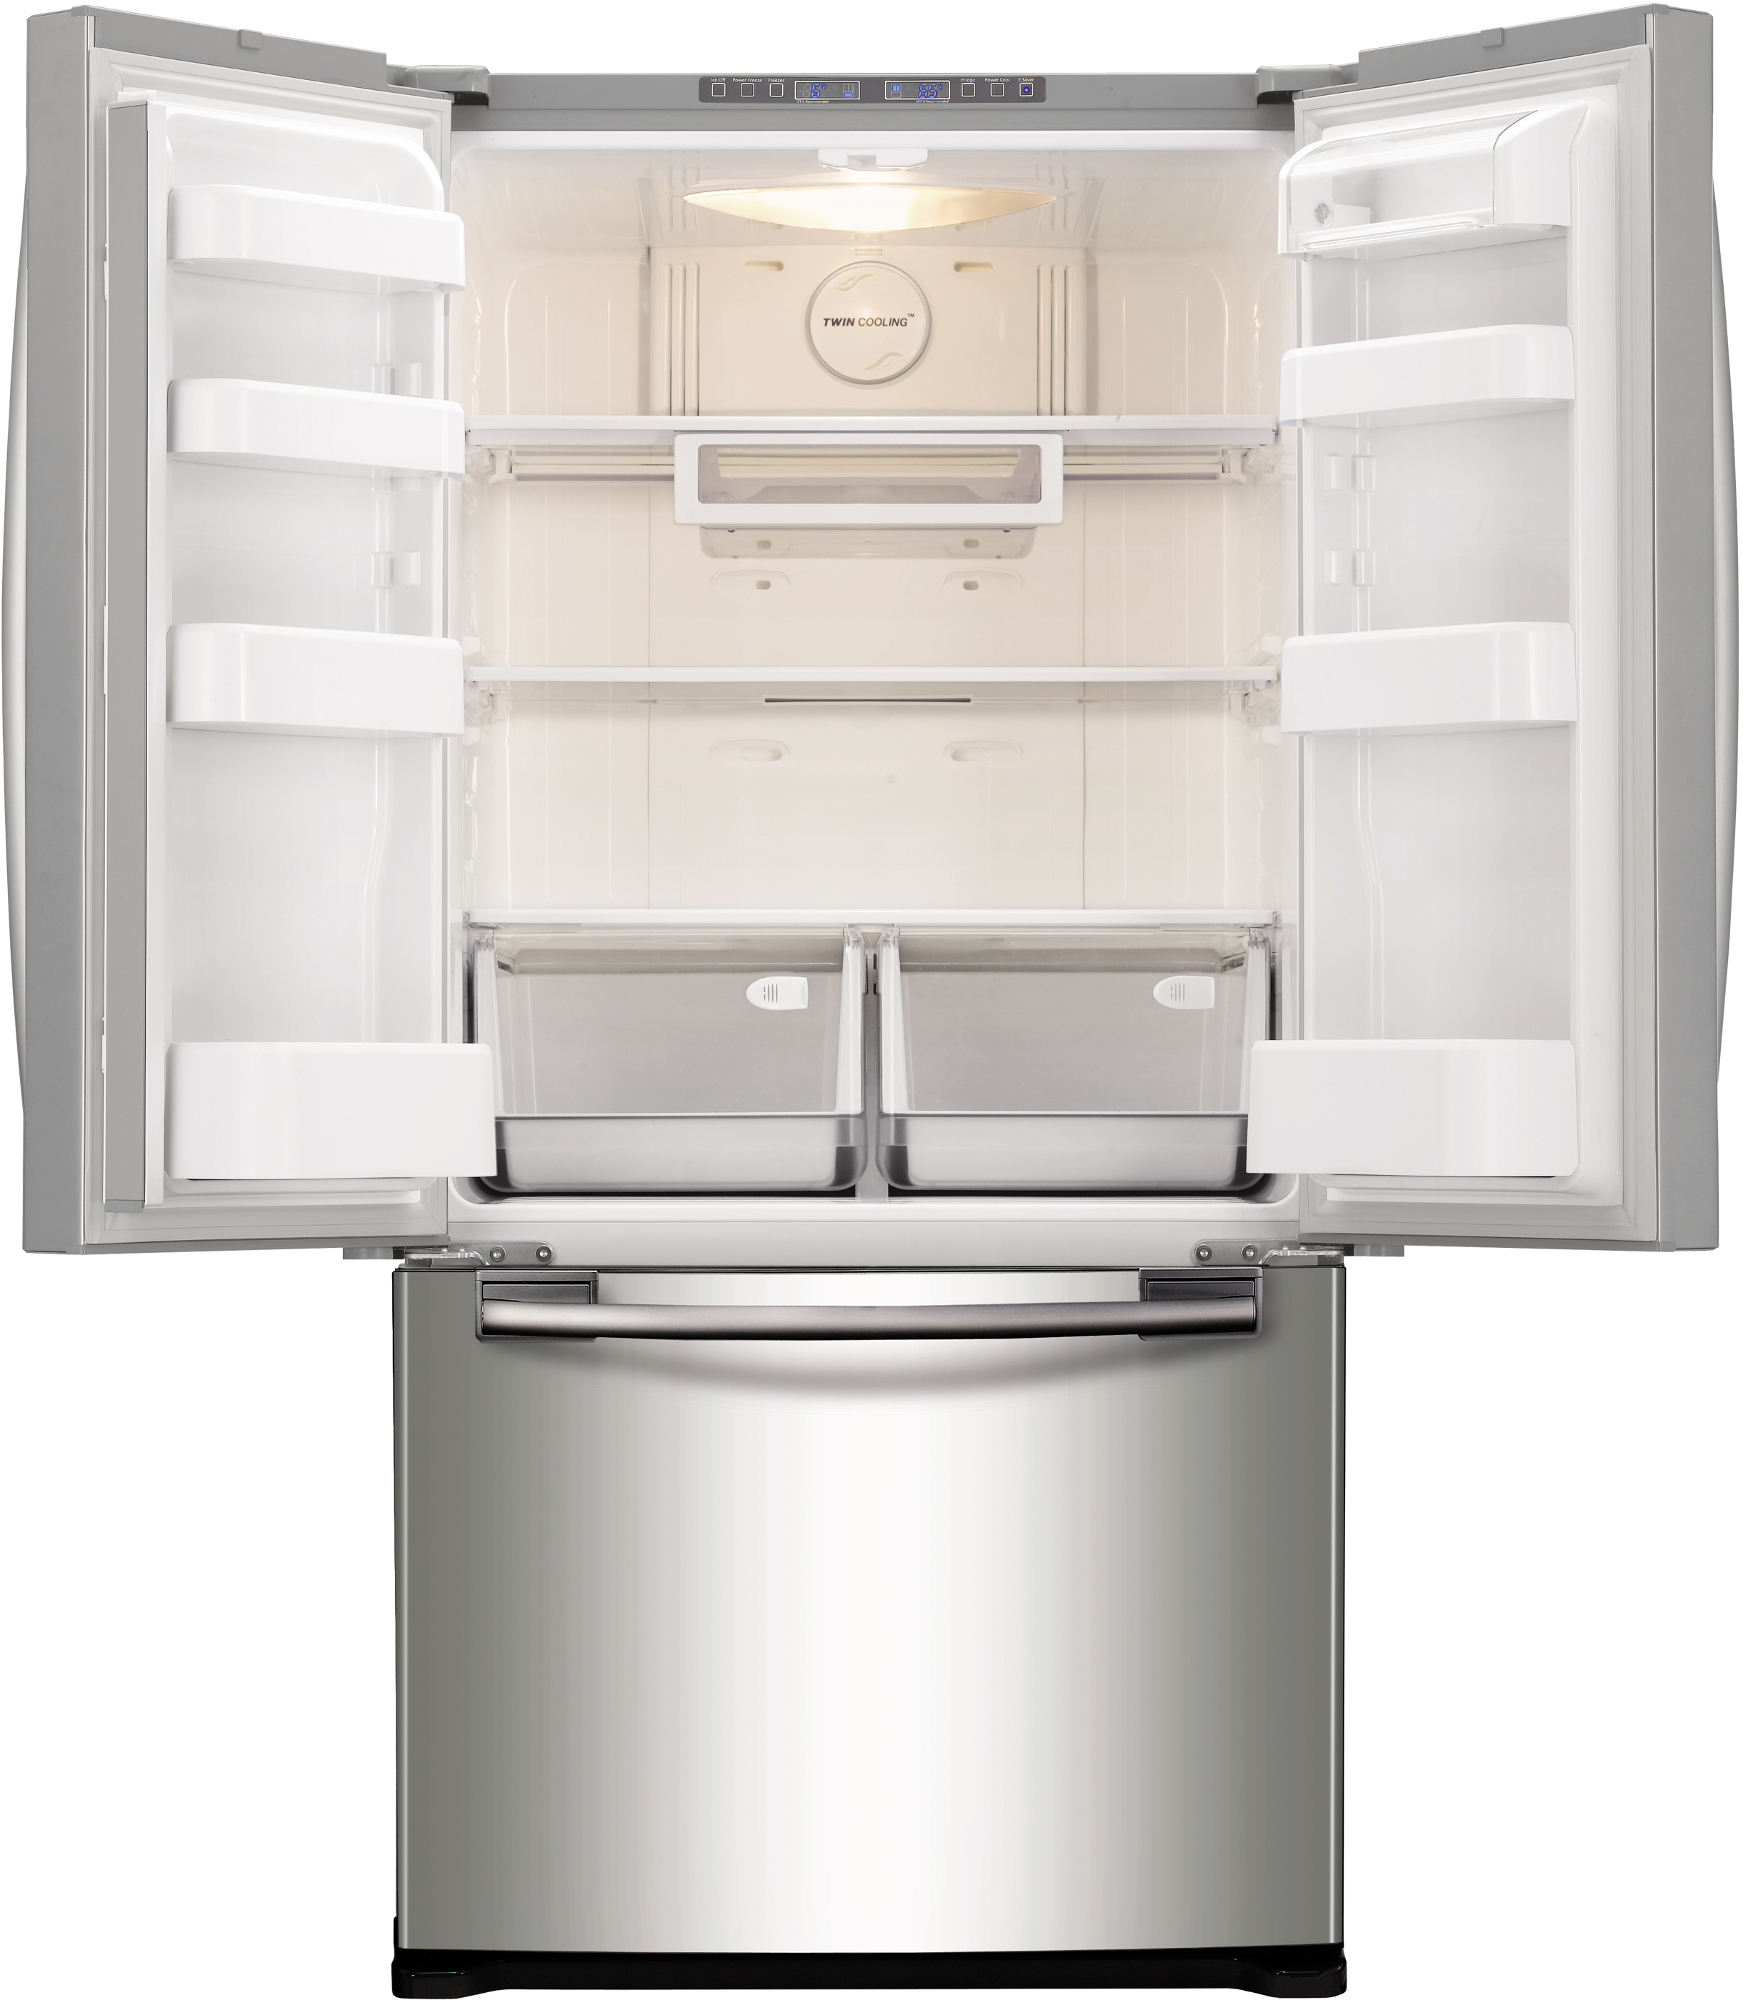 Samsung 20 cu. ft. French Door Refrigerator w/ Twin Cooling System® - Stainless Steel